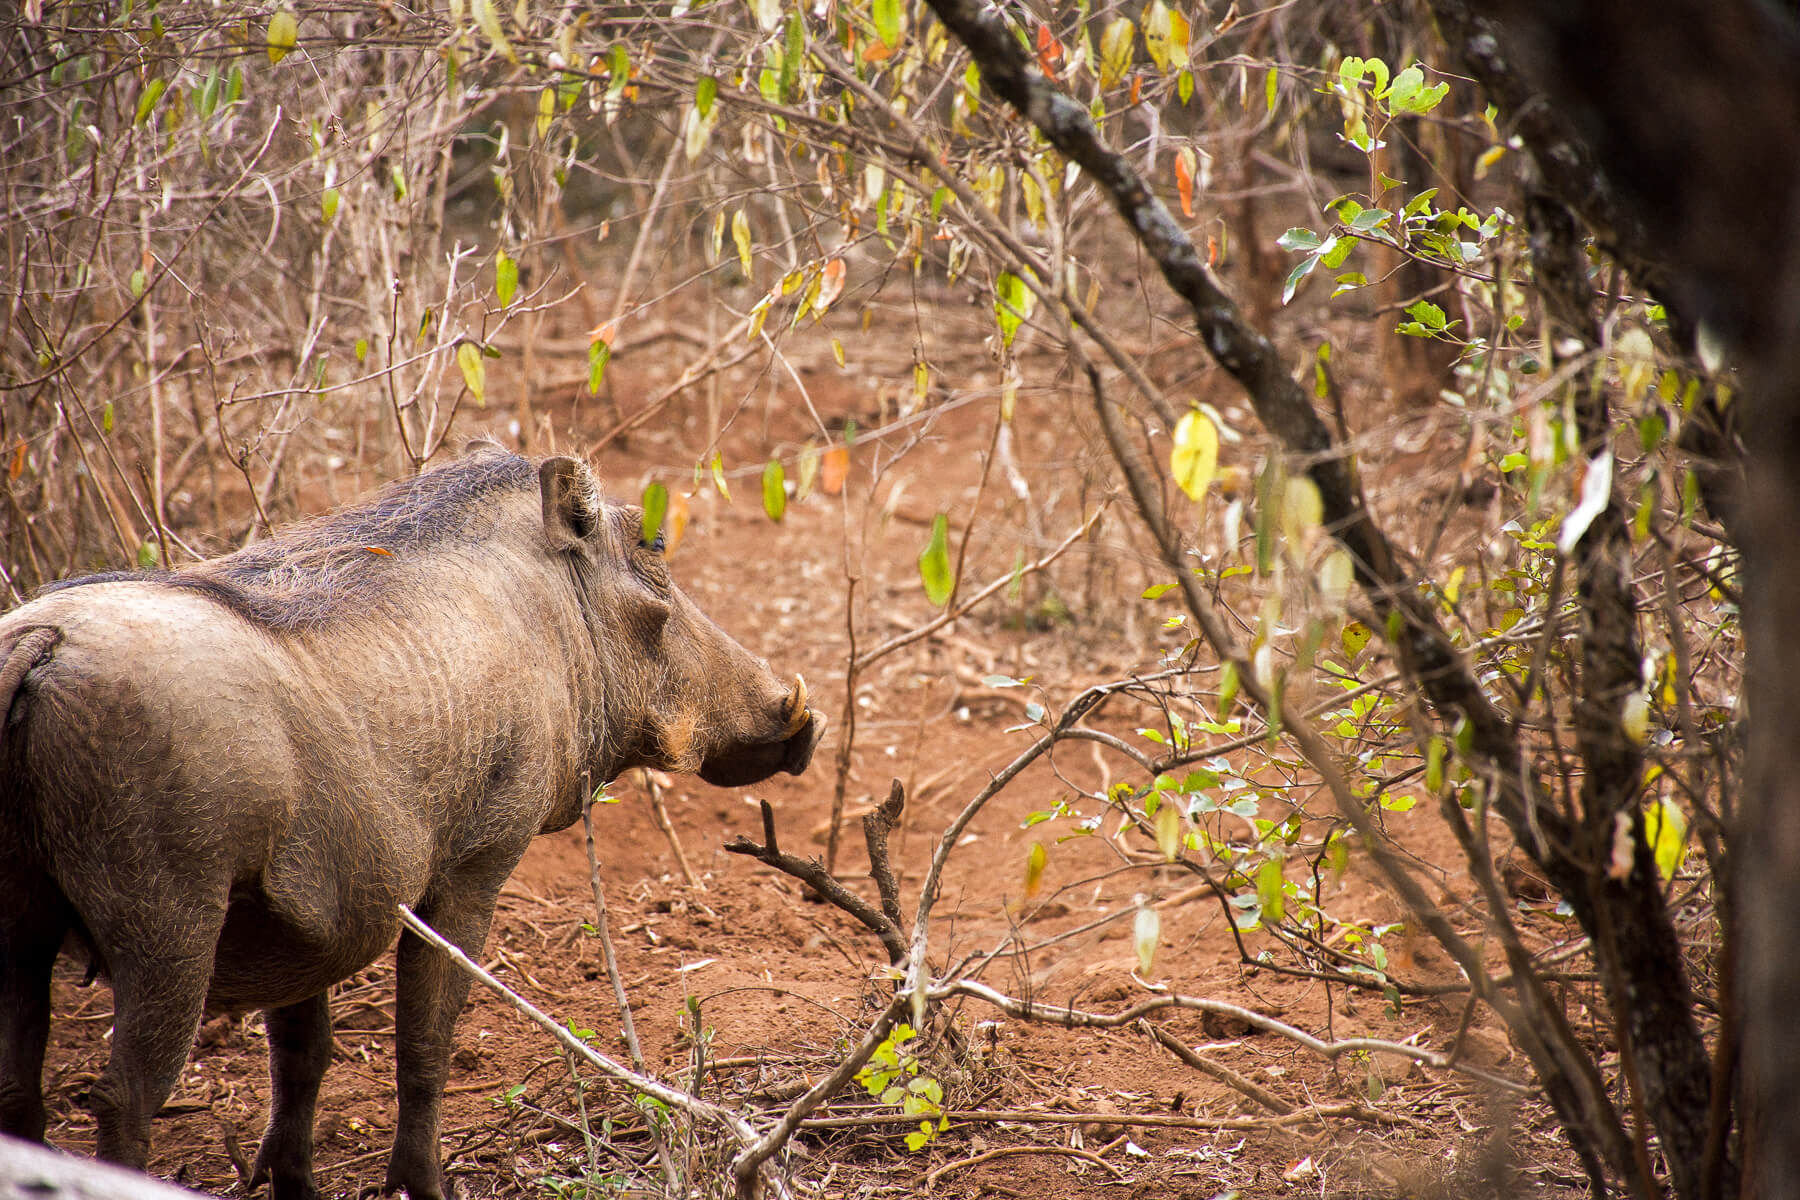 A warthog standing underneath some spindly trees in the red dirt